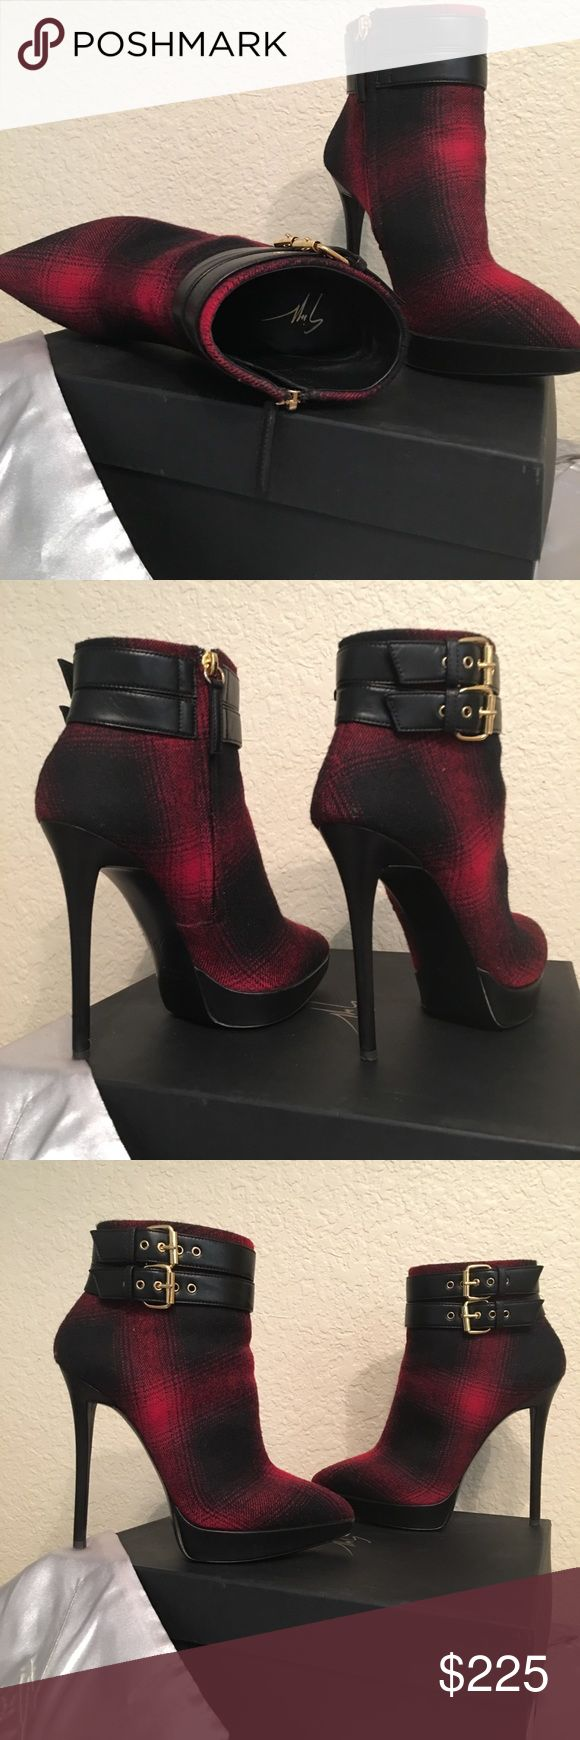 "Giuseppe Zanotti Red/Black booties 37 (7) Gently worn red/ black stiletto ankle boots 5"" heel. Wool material. Includes box and designer bag. Will consider all reasonable offers. Giuseppe Zanotti Shoes Ankle Boots & Booties #giuseppezanottiheelsred"